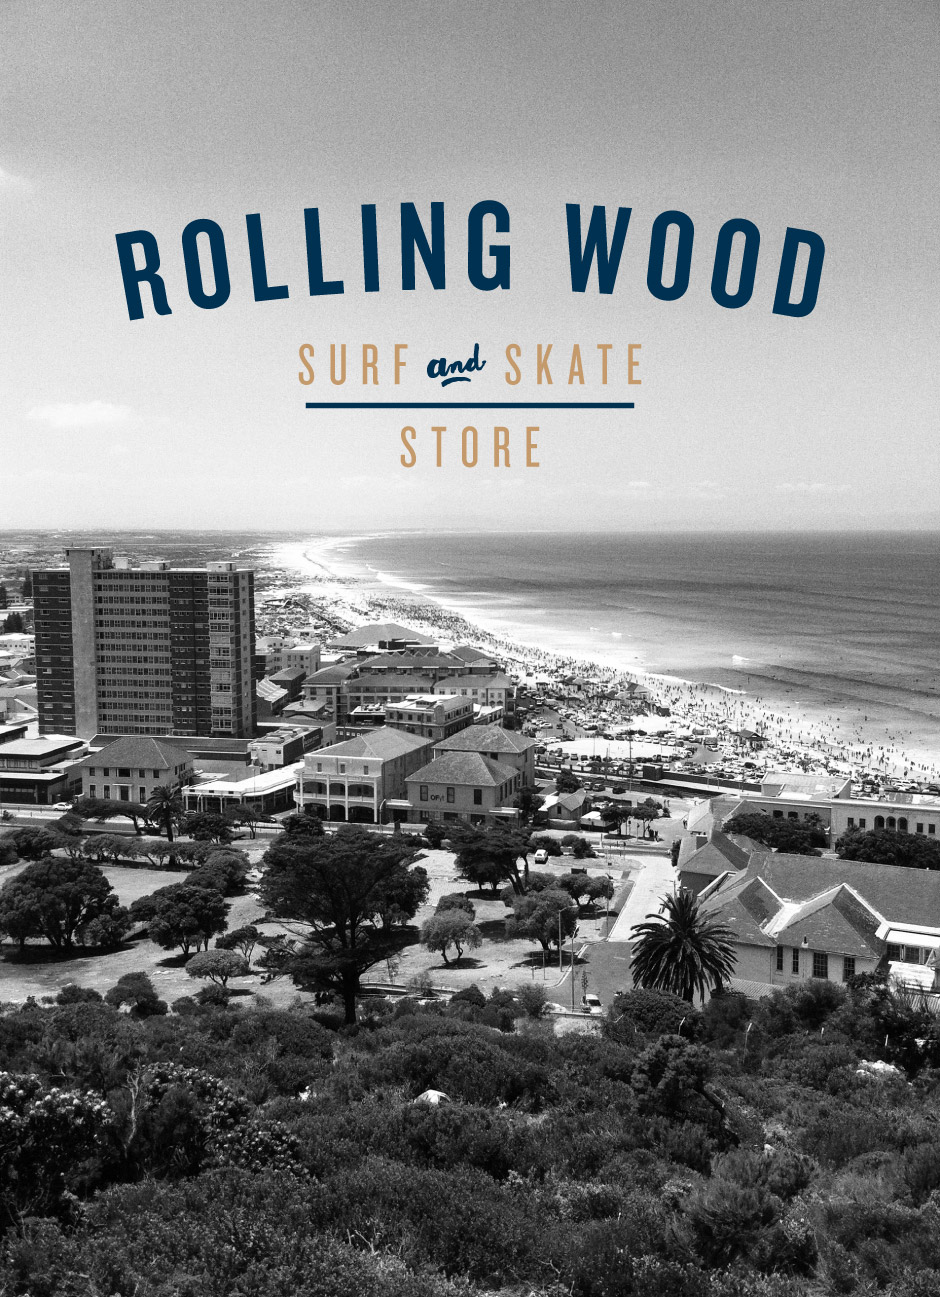 Rolling Wood Surf and Skate Store